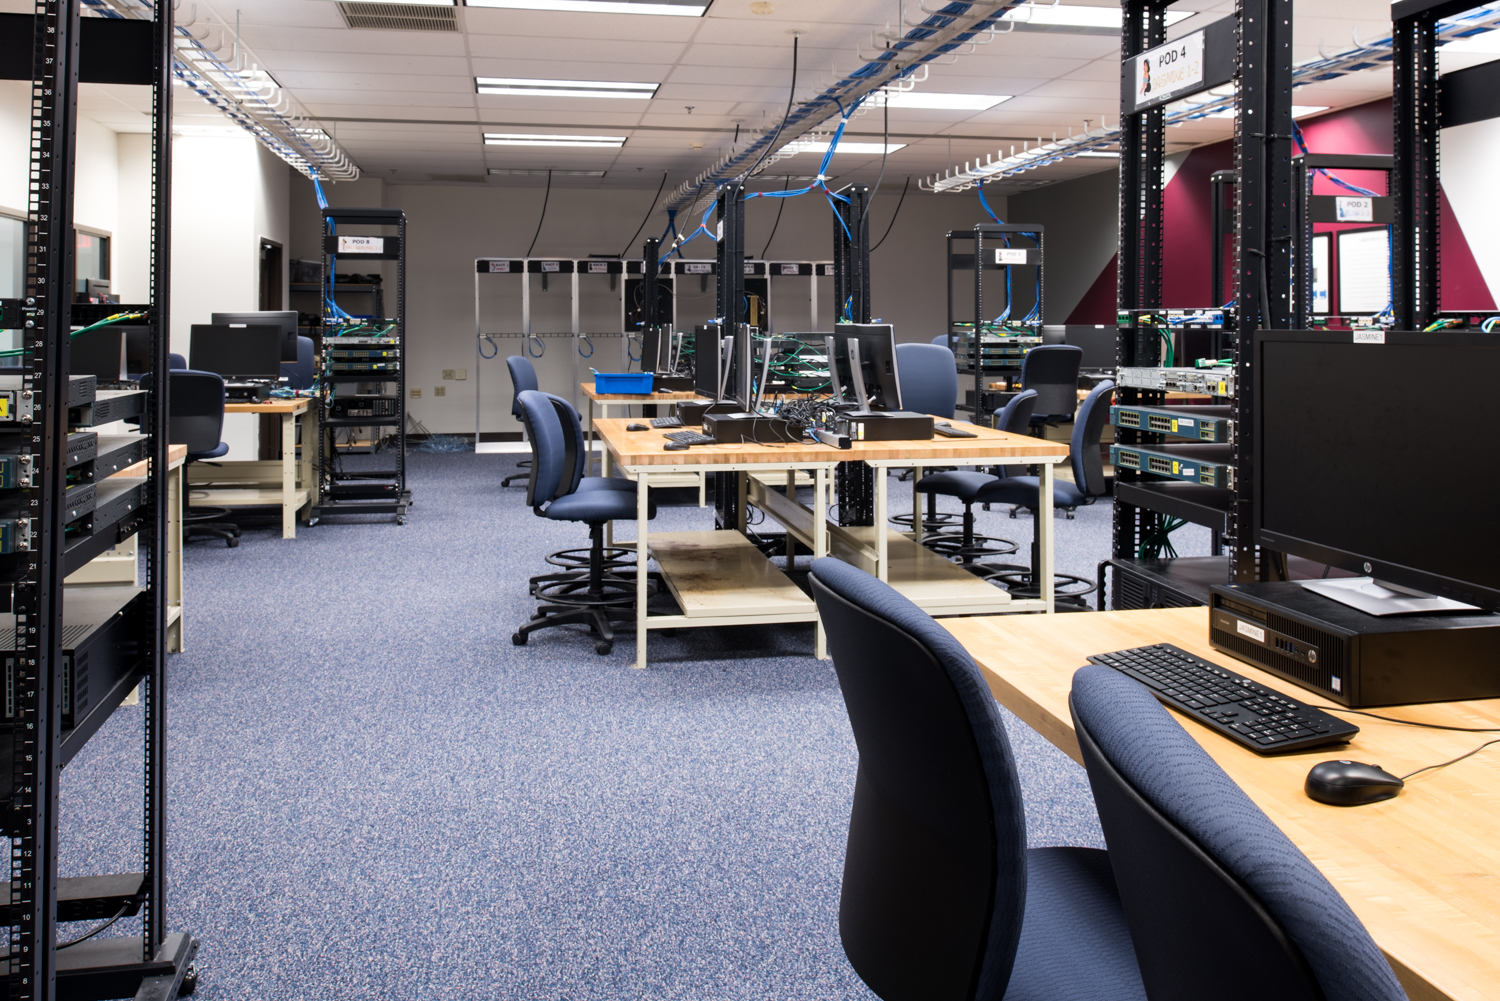 An image showcasing the Systems Administration Lab in the School of Information at RIT. It showcases the lab full of computers, racks, switches, routers and servers.